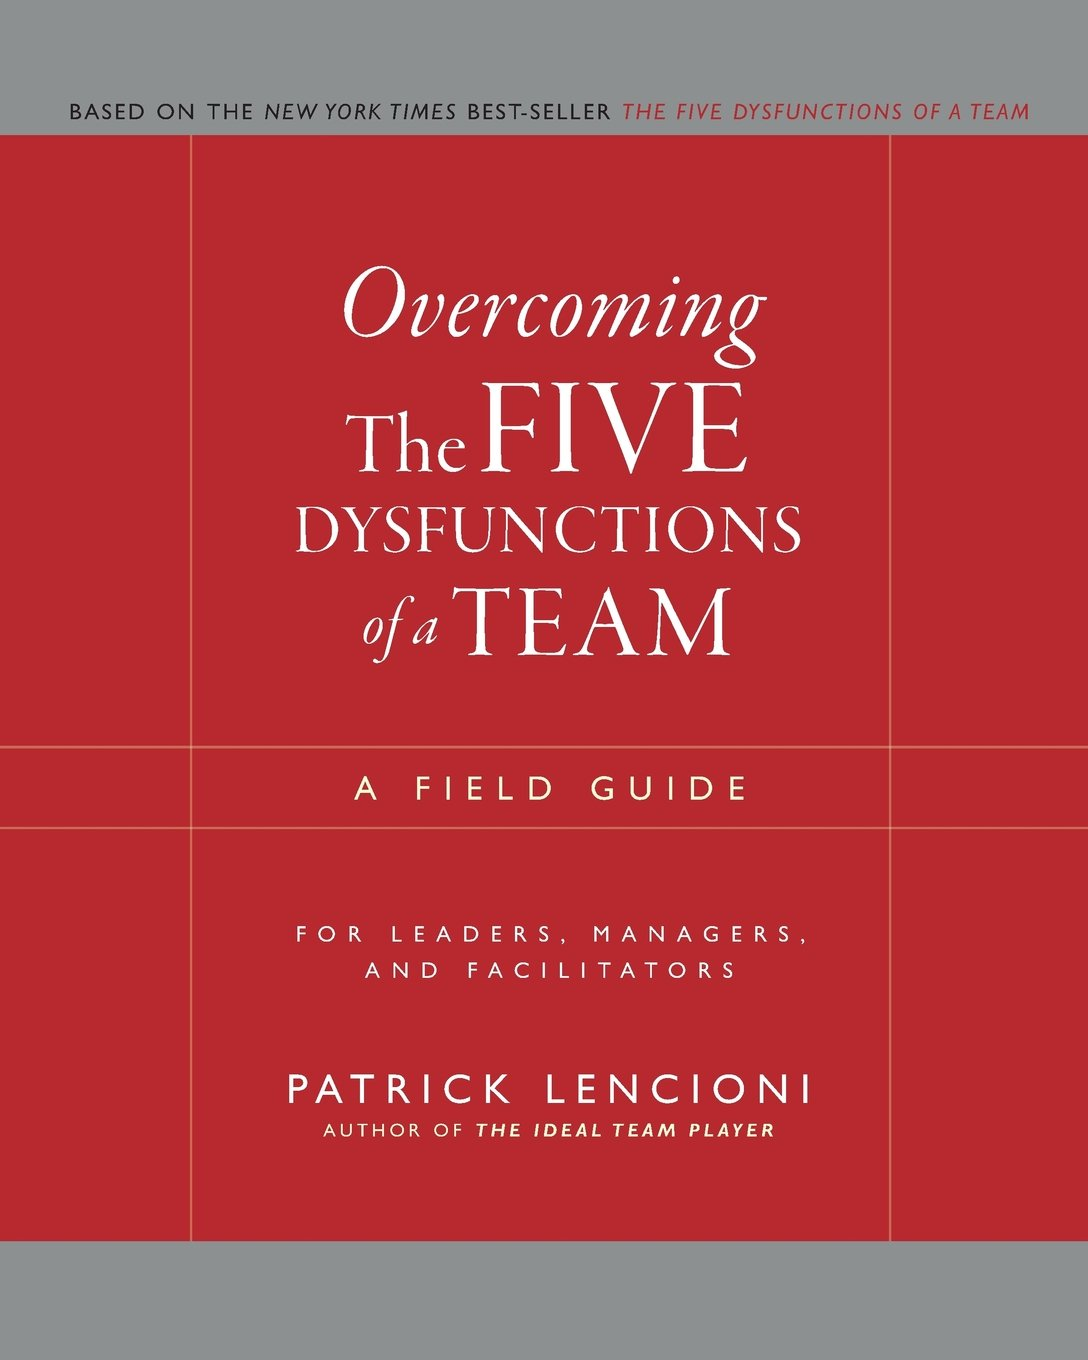 Overcoming The Five Dysfunctions of a Team: A Field Guide for Leaders,  Managers, and Facilitators (J-B Lencioni Series): Amazon.co.uk: Patrick M.  Lencioni: ...